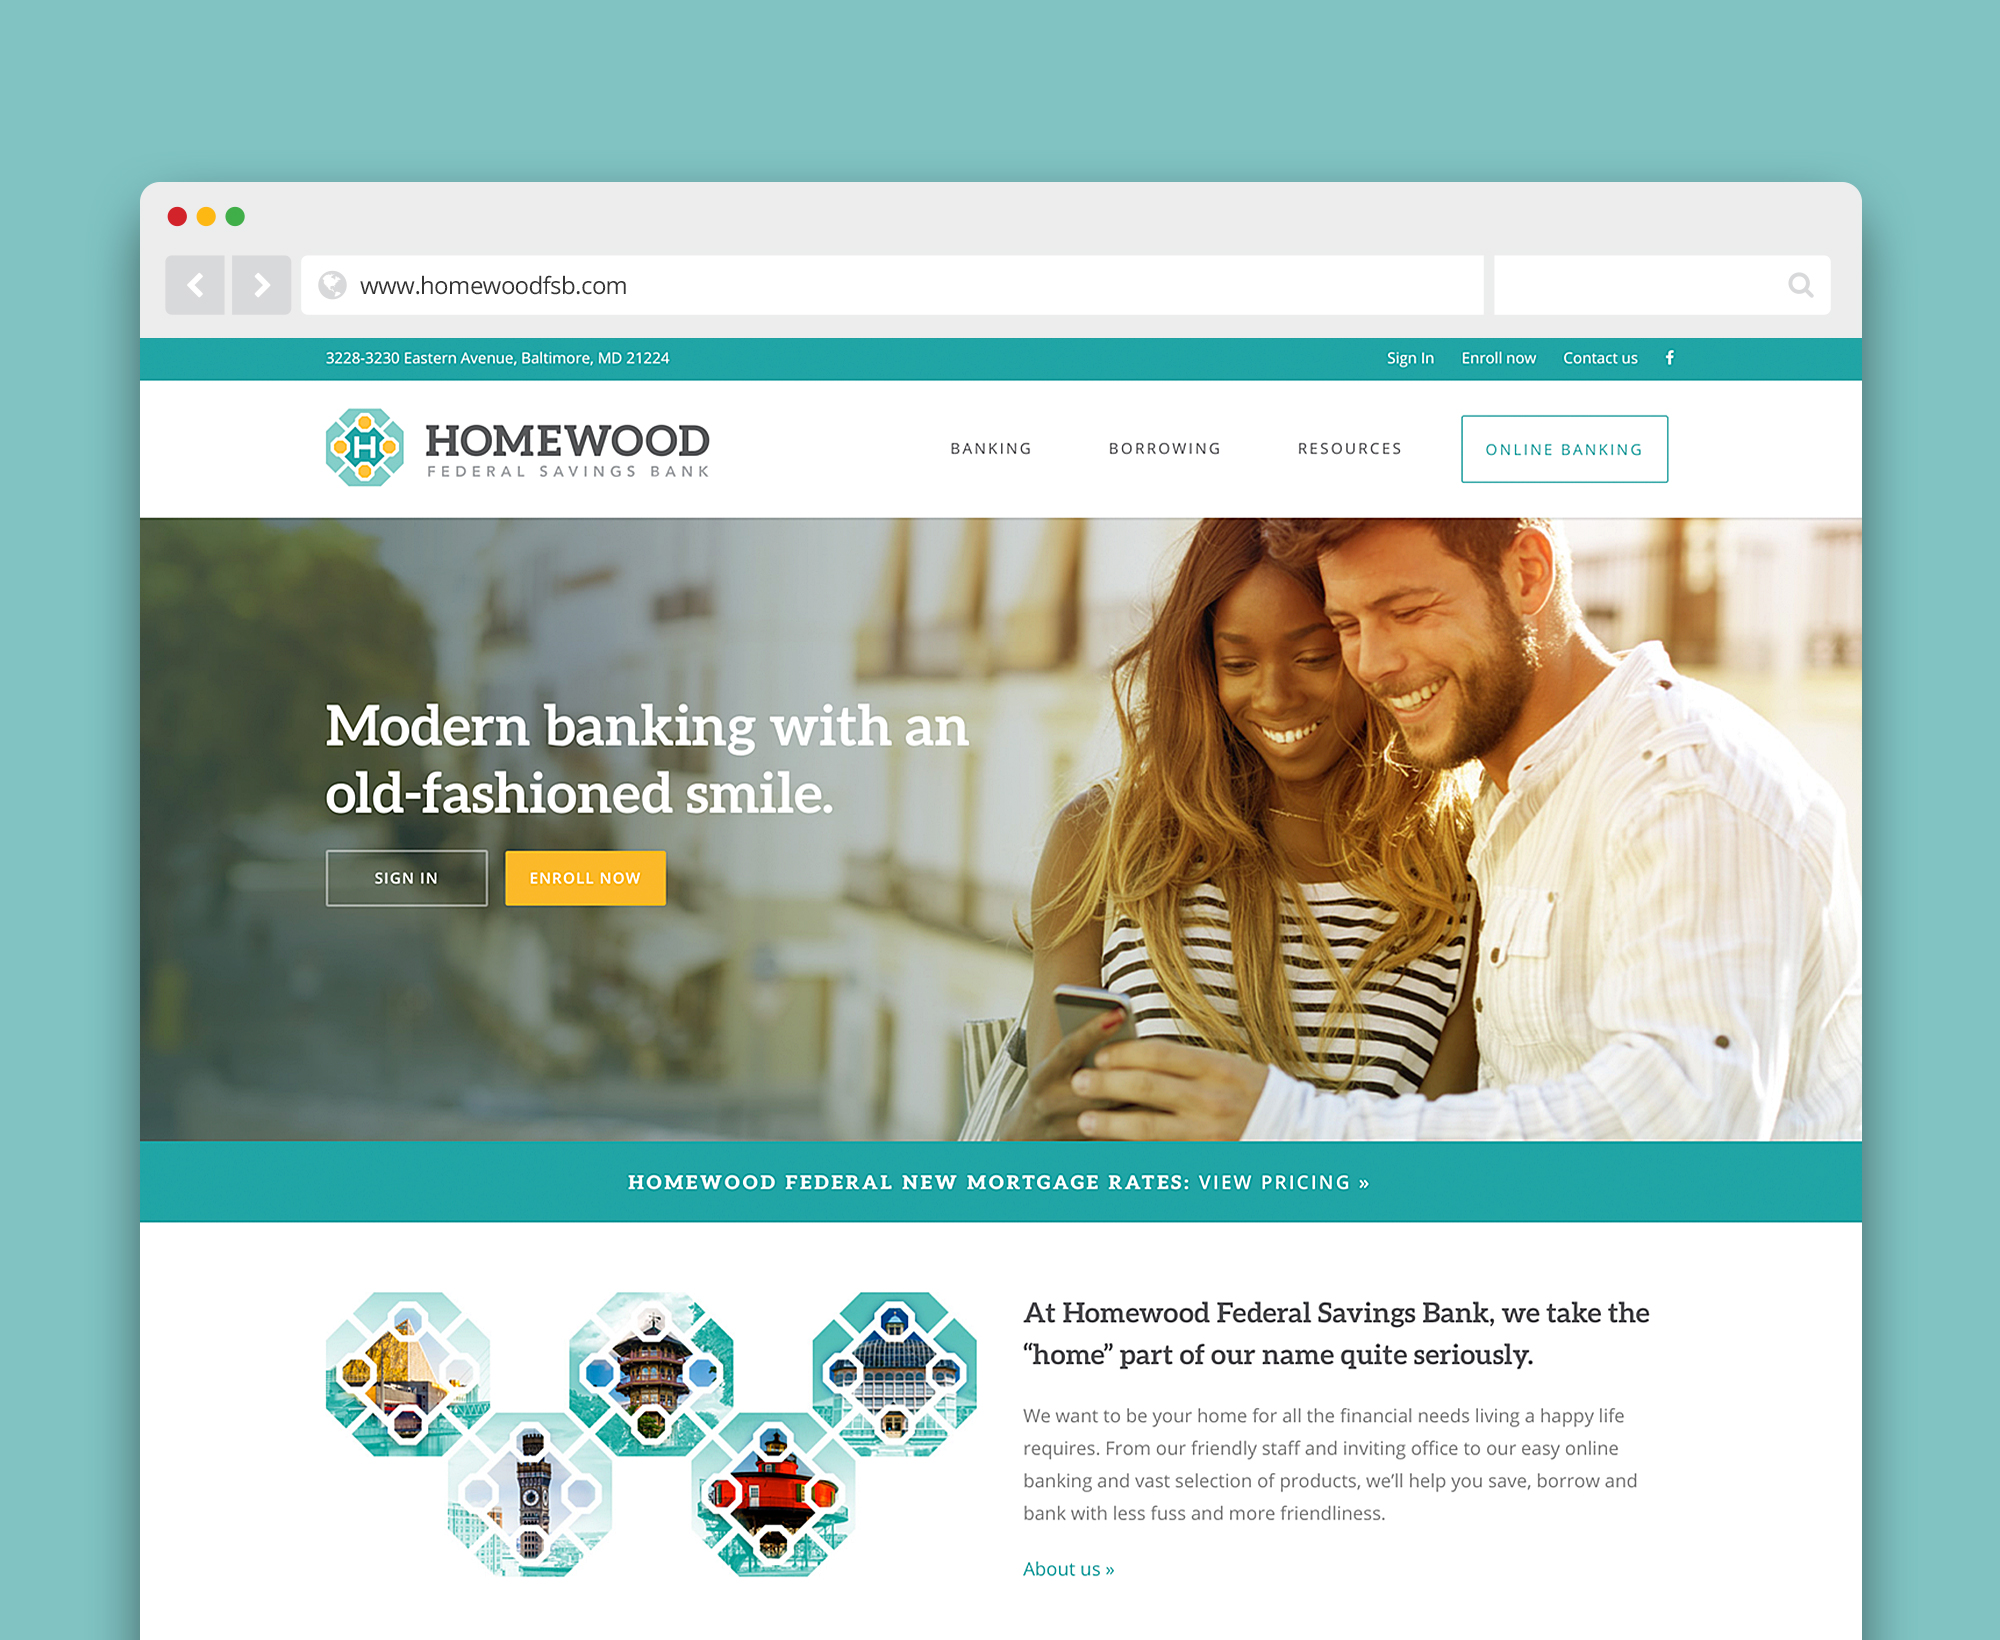 Homewood Federal Savings Bank HFSB website - designed by ACS Creative 301-528-5575